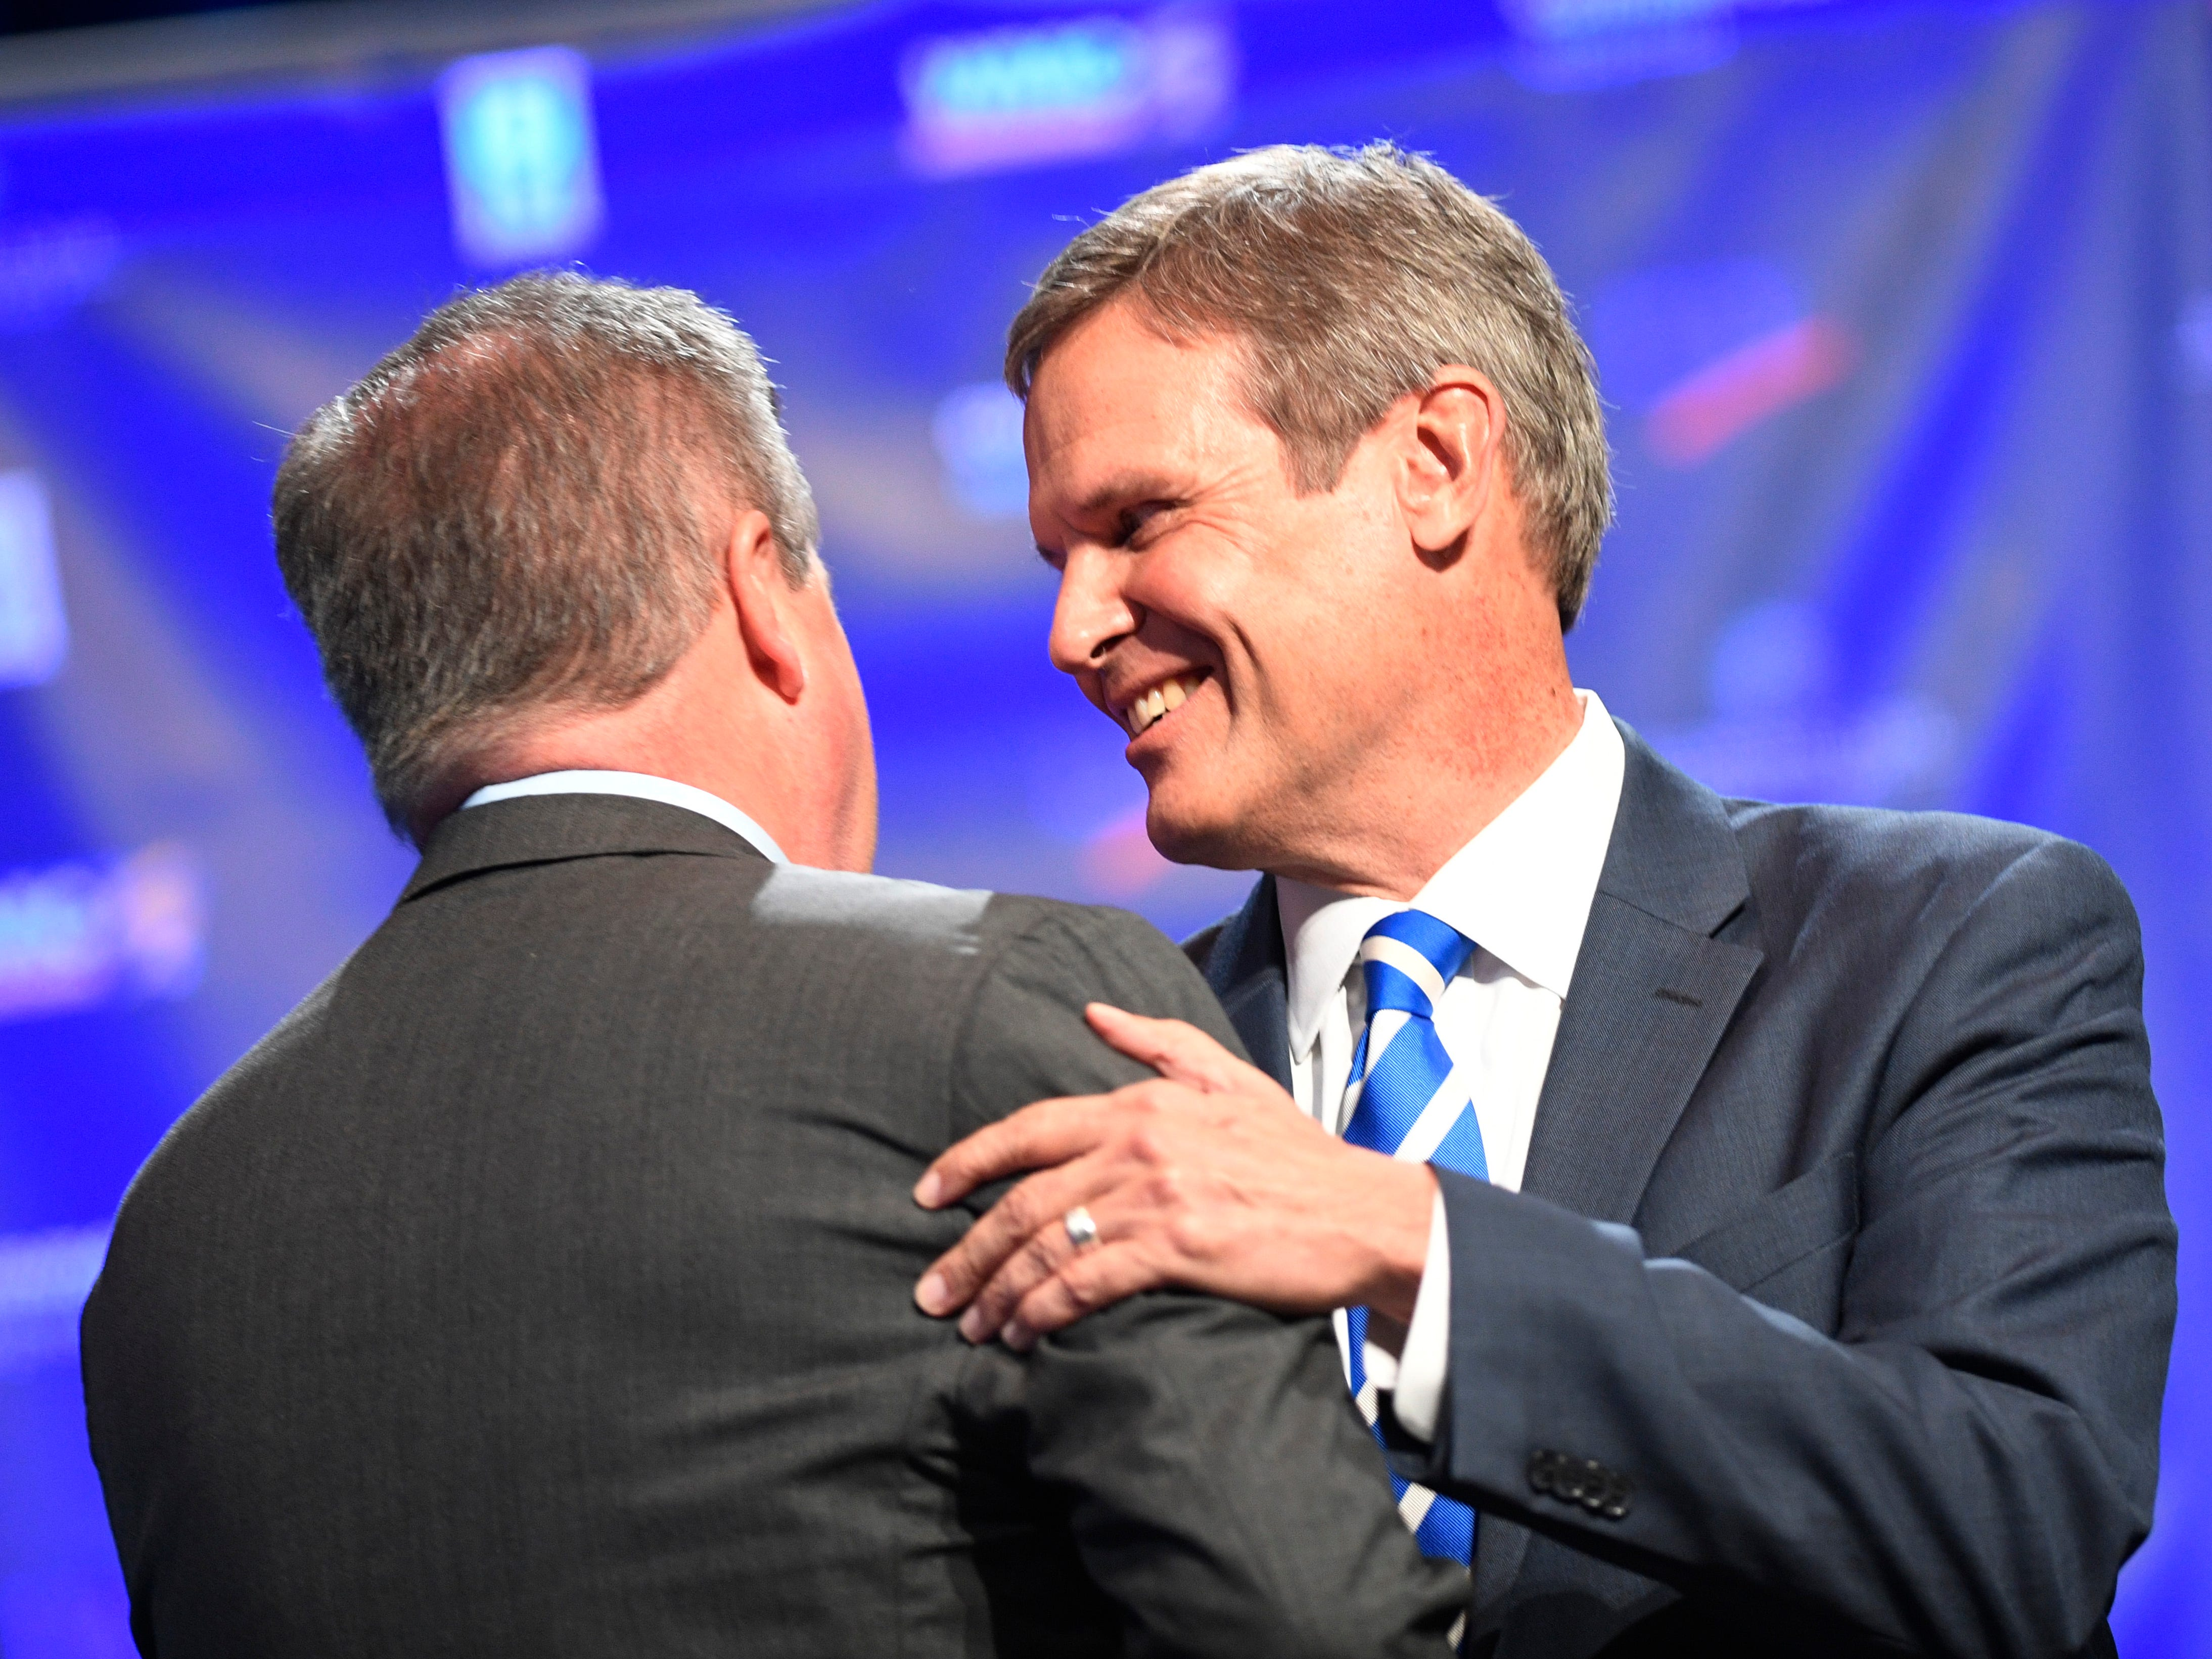 Tennessee gubernatorial candidates Democrat Karl Dean, left, and Republican Bill Lee greet each other at the start of the debate at the University of Memphis' Michael D. Rose Theater in Memphis, Tenn., on Tuesday, Oct. 2, 2018.